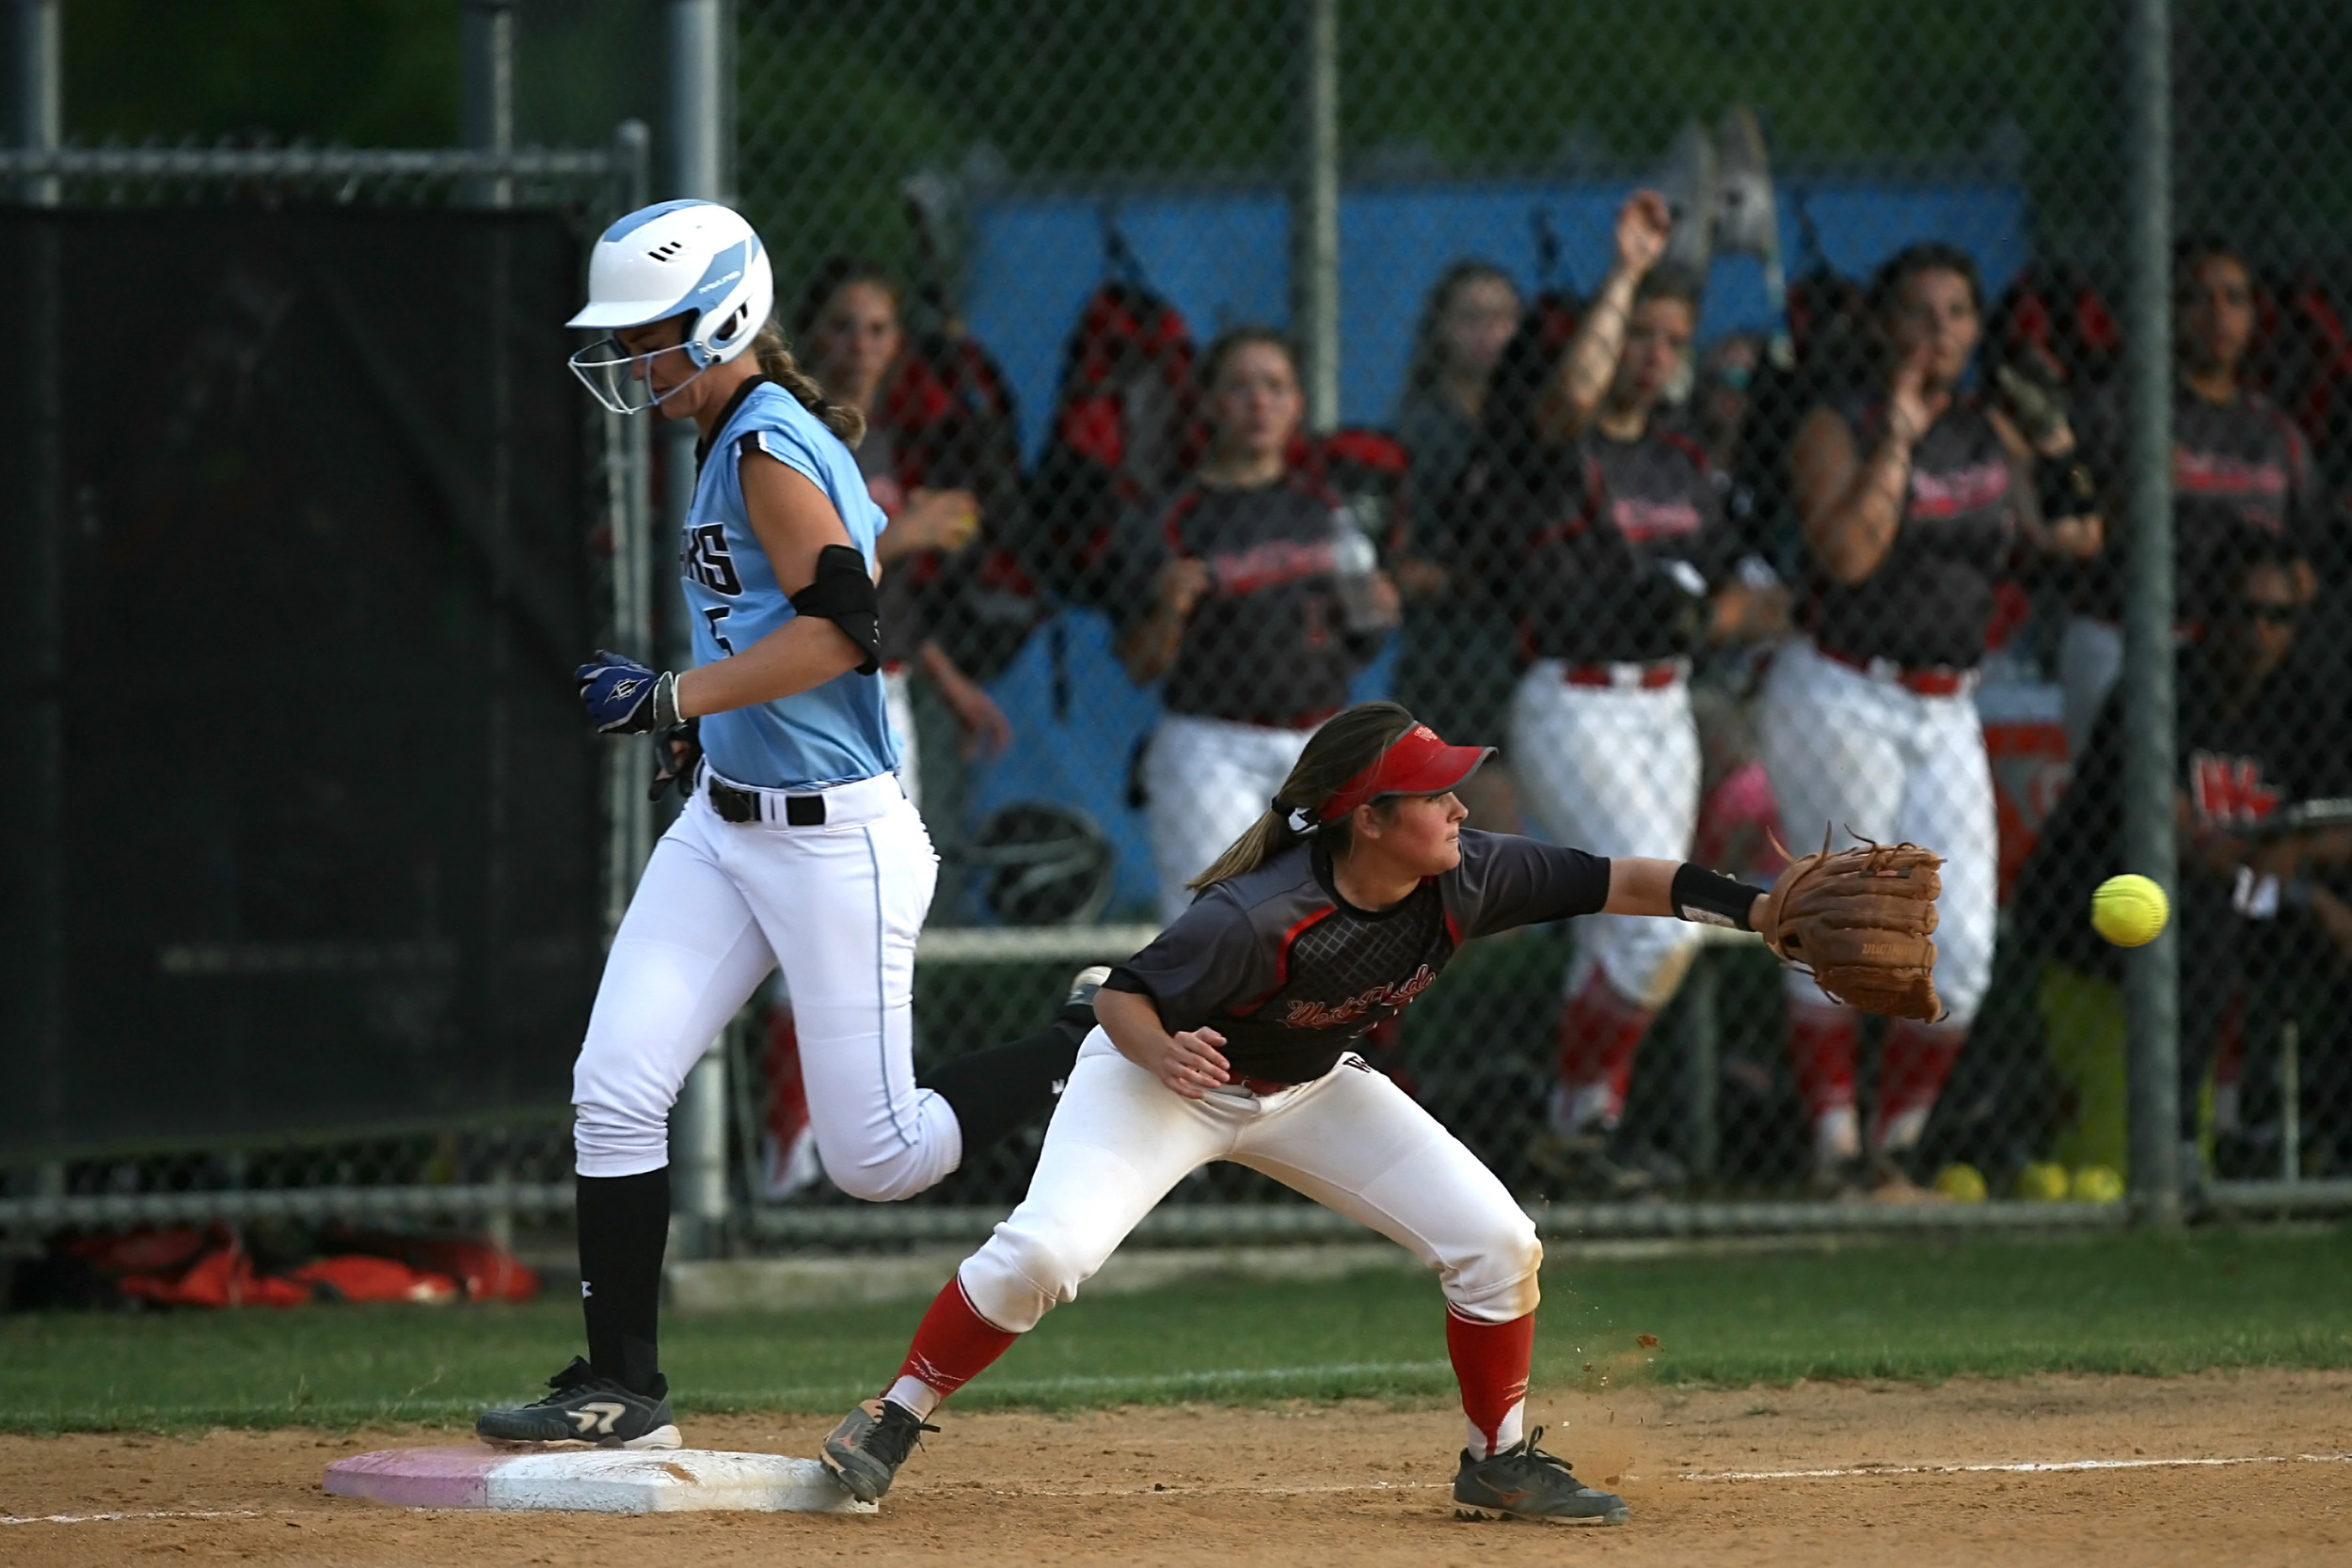 Michelle Holder beats the throw to first for a base hit against West Florida.